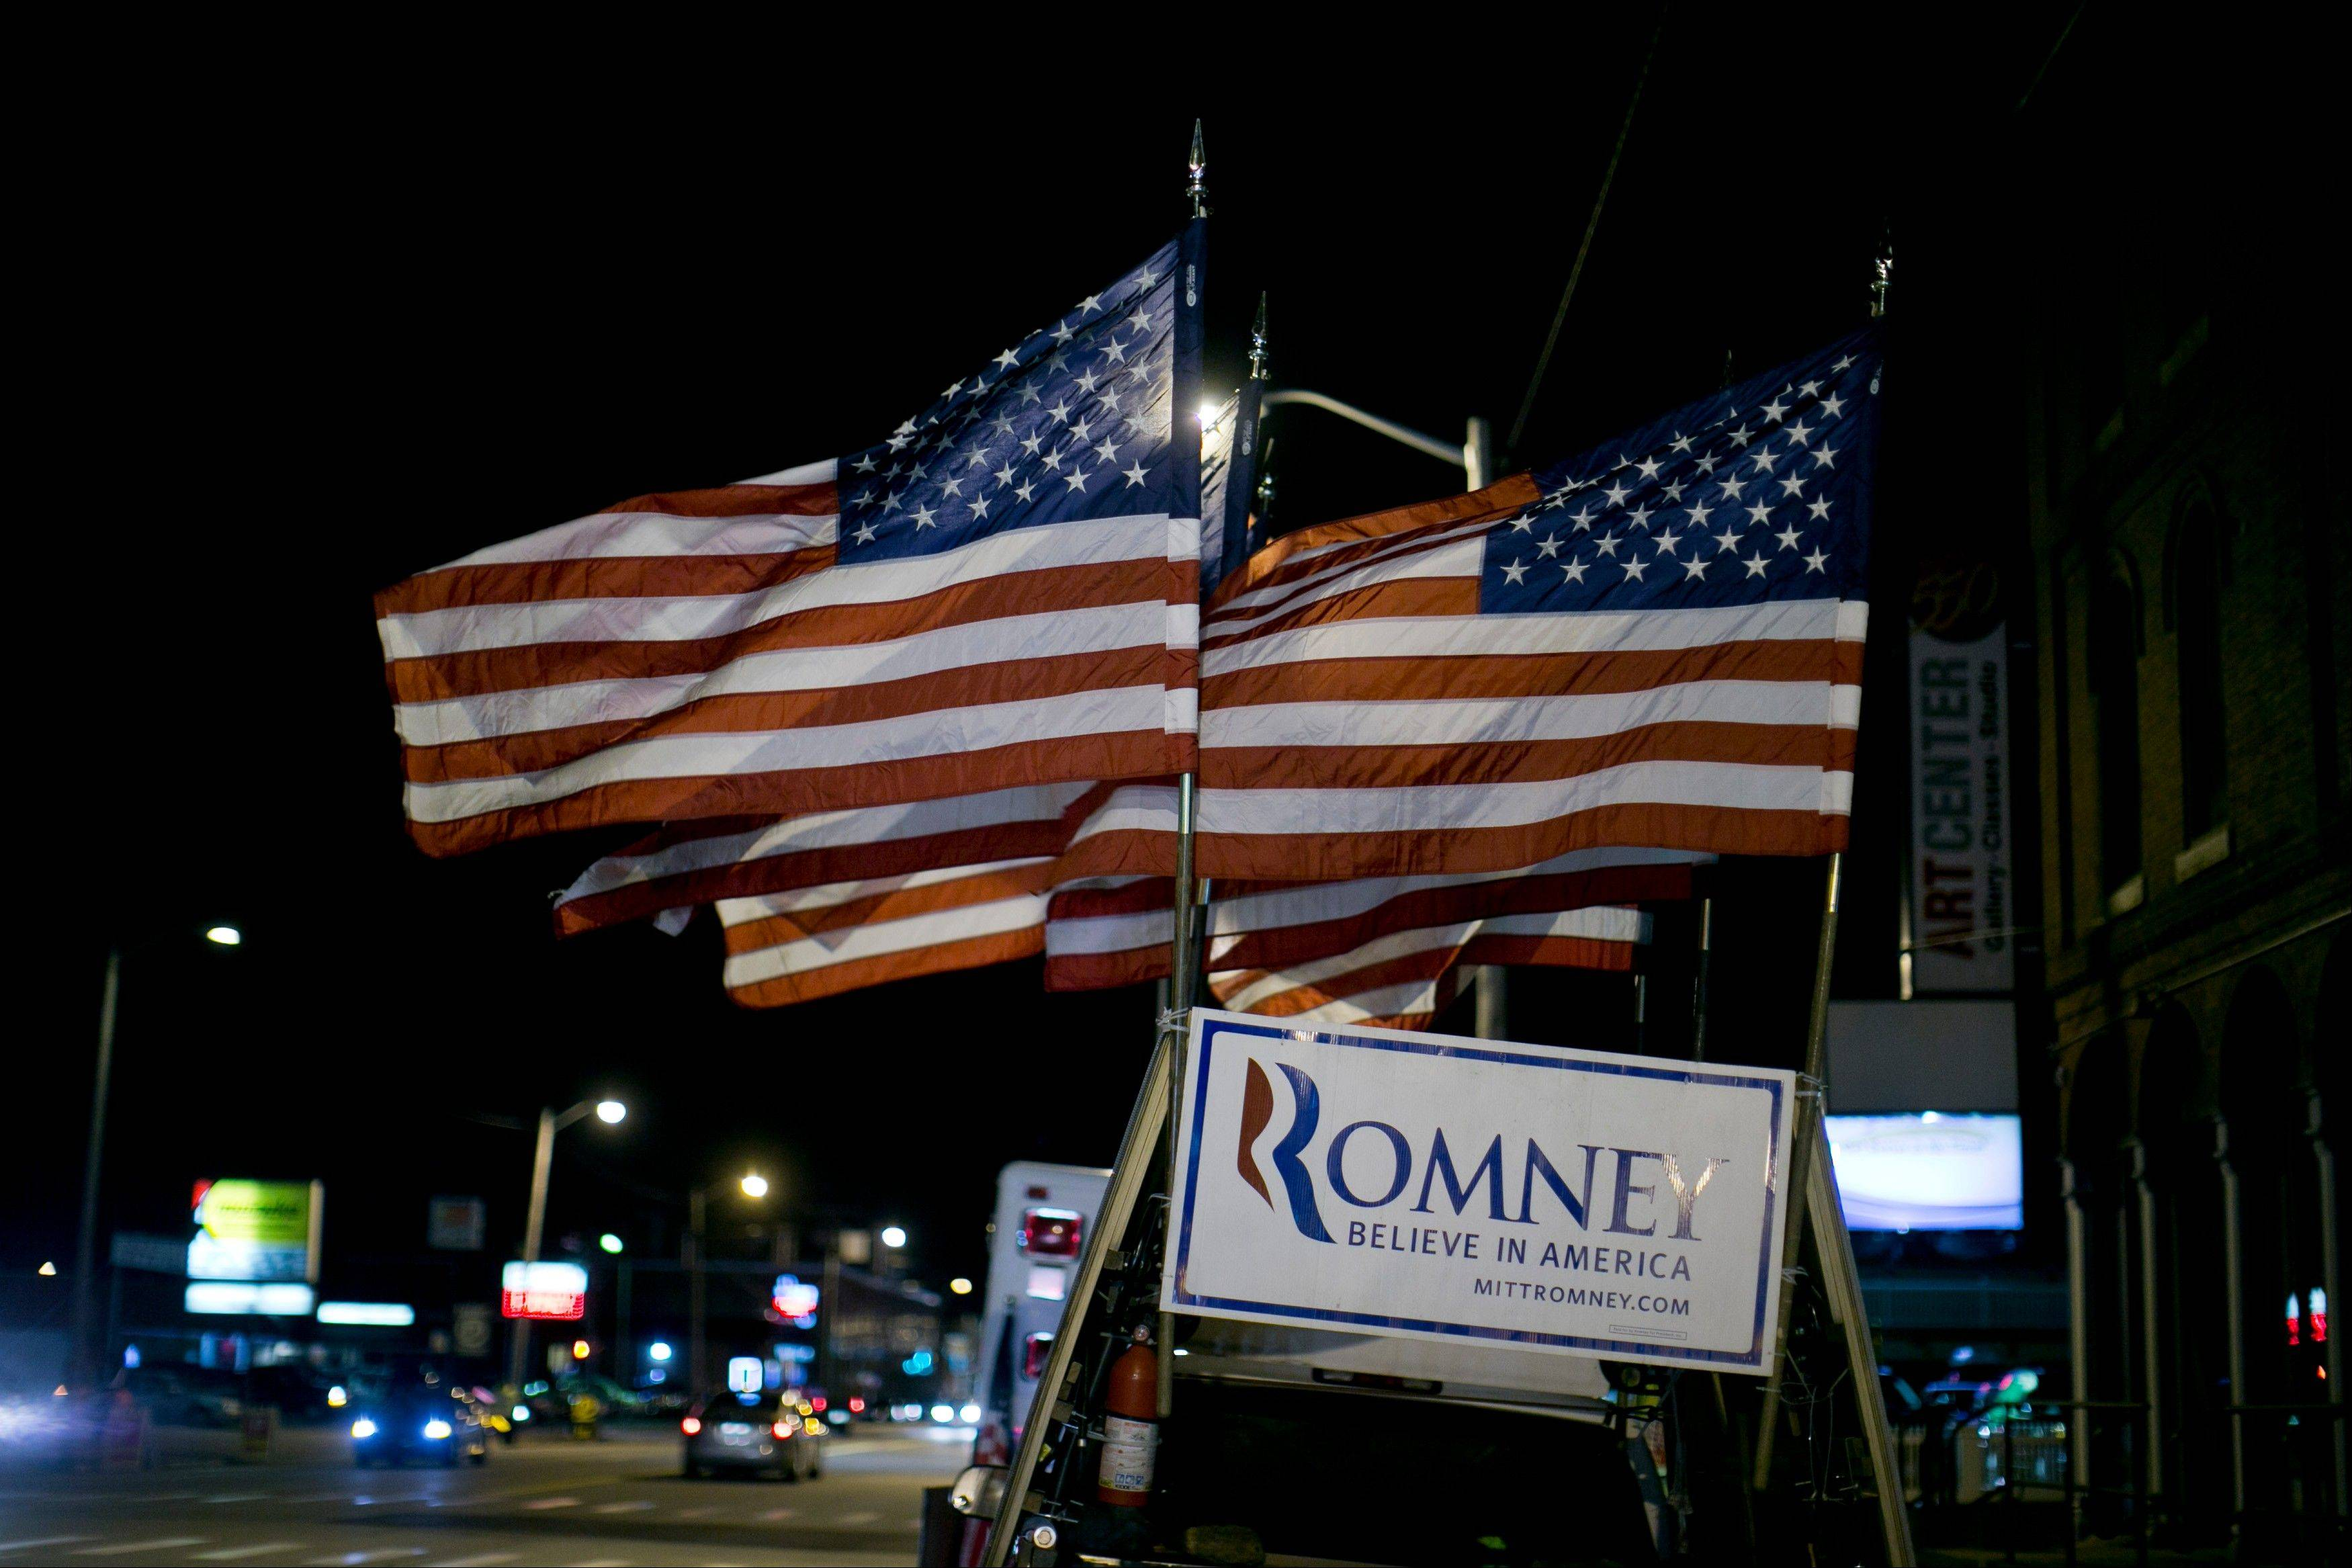 Flags fly above a sign for Republican presidential candidate Mitt Romney on a truck prior to a Romney campaign rally at the Verizon Wireless Center in Manchester, New Hampshire, U.S., on Monday.